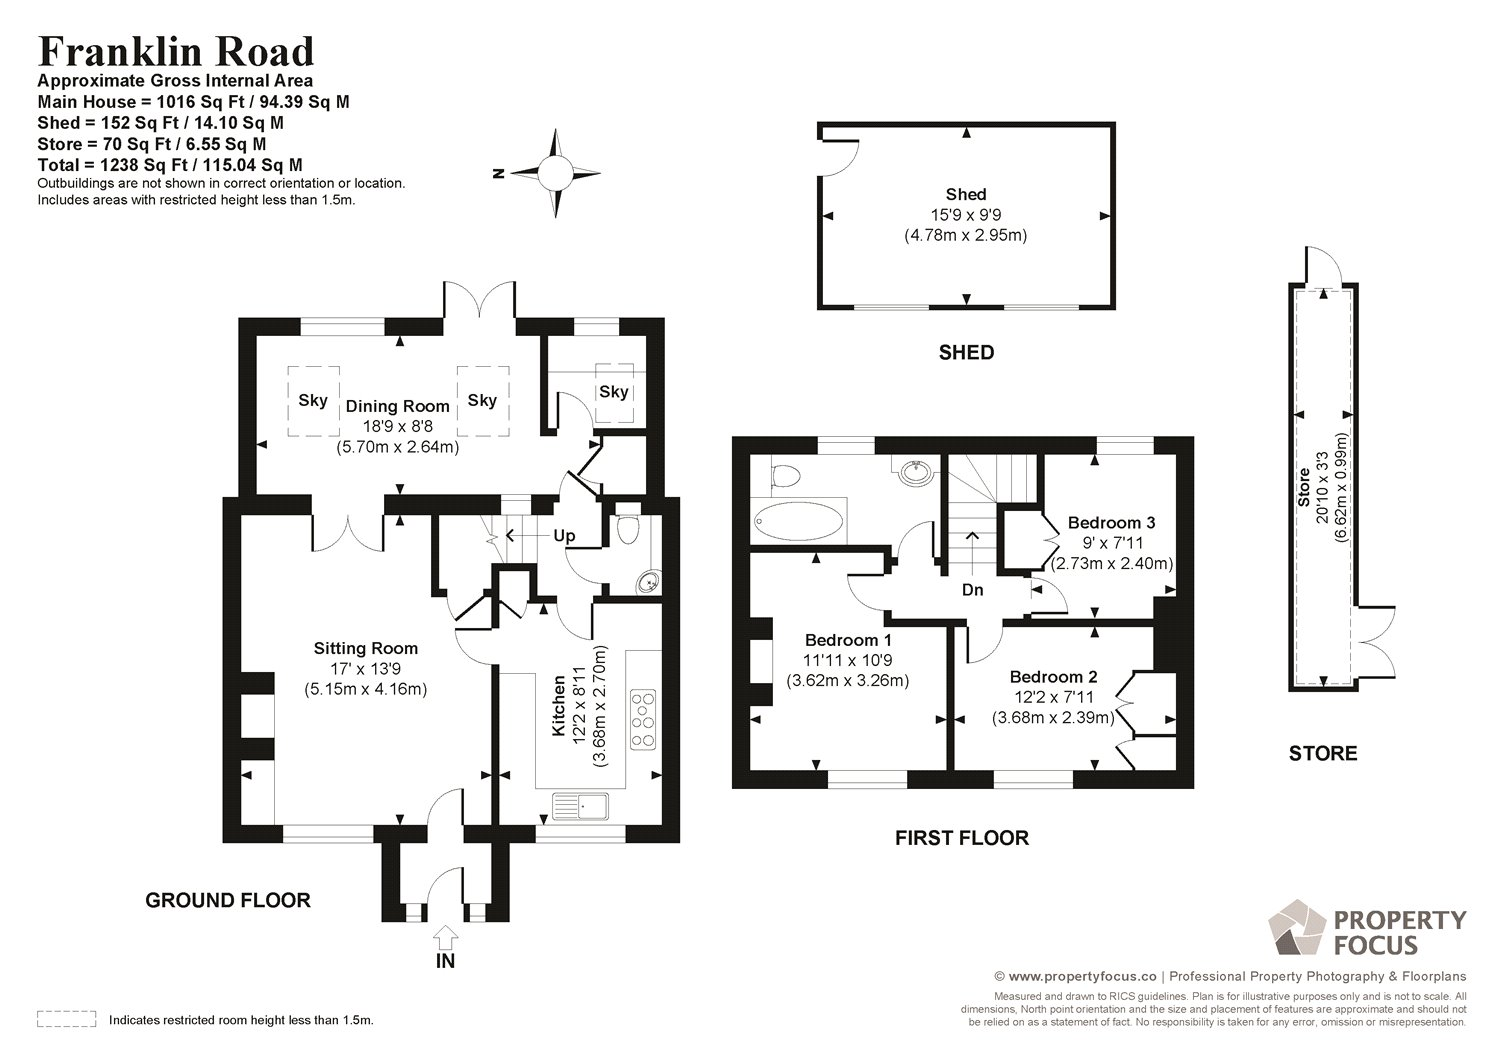 3 Bedroom Property For Sale In Franklin Road Twyford Winchester Stove Diagram Guide Price 325000 Freehold